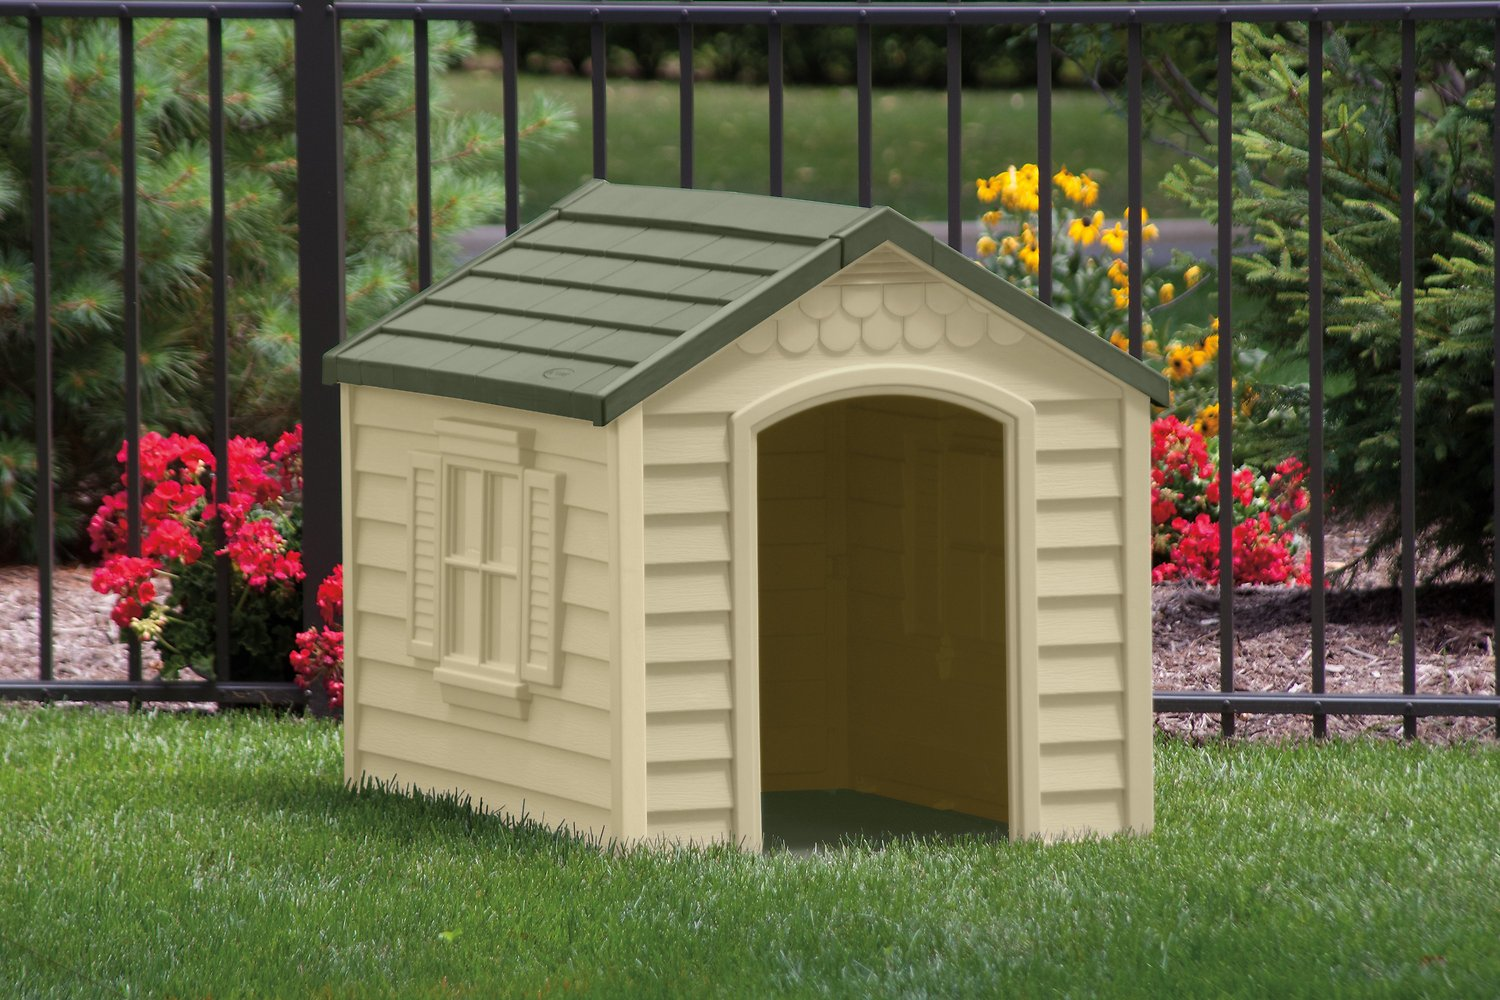 Dog House Suncast Dh250 Deluxe Dog House